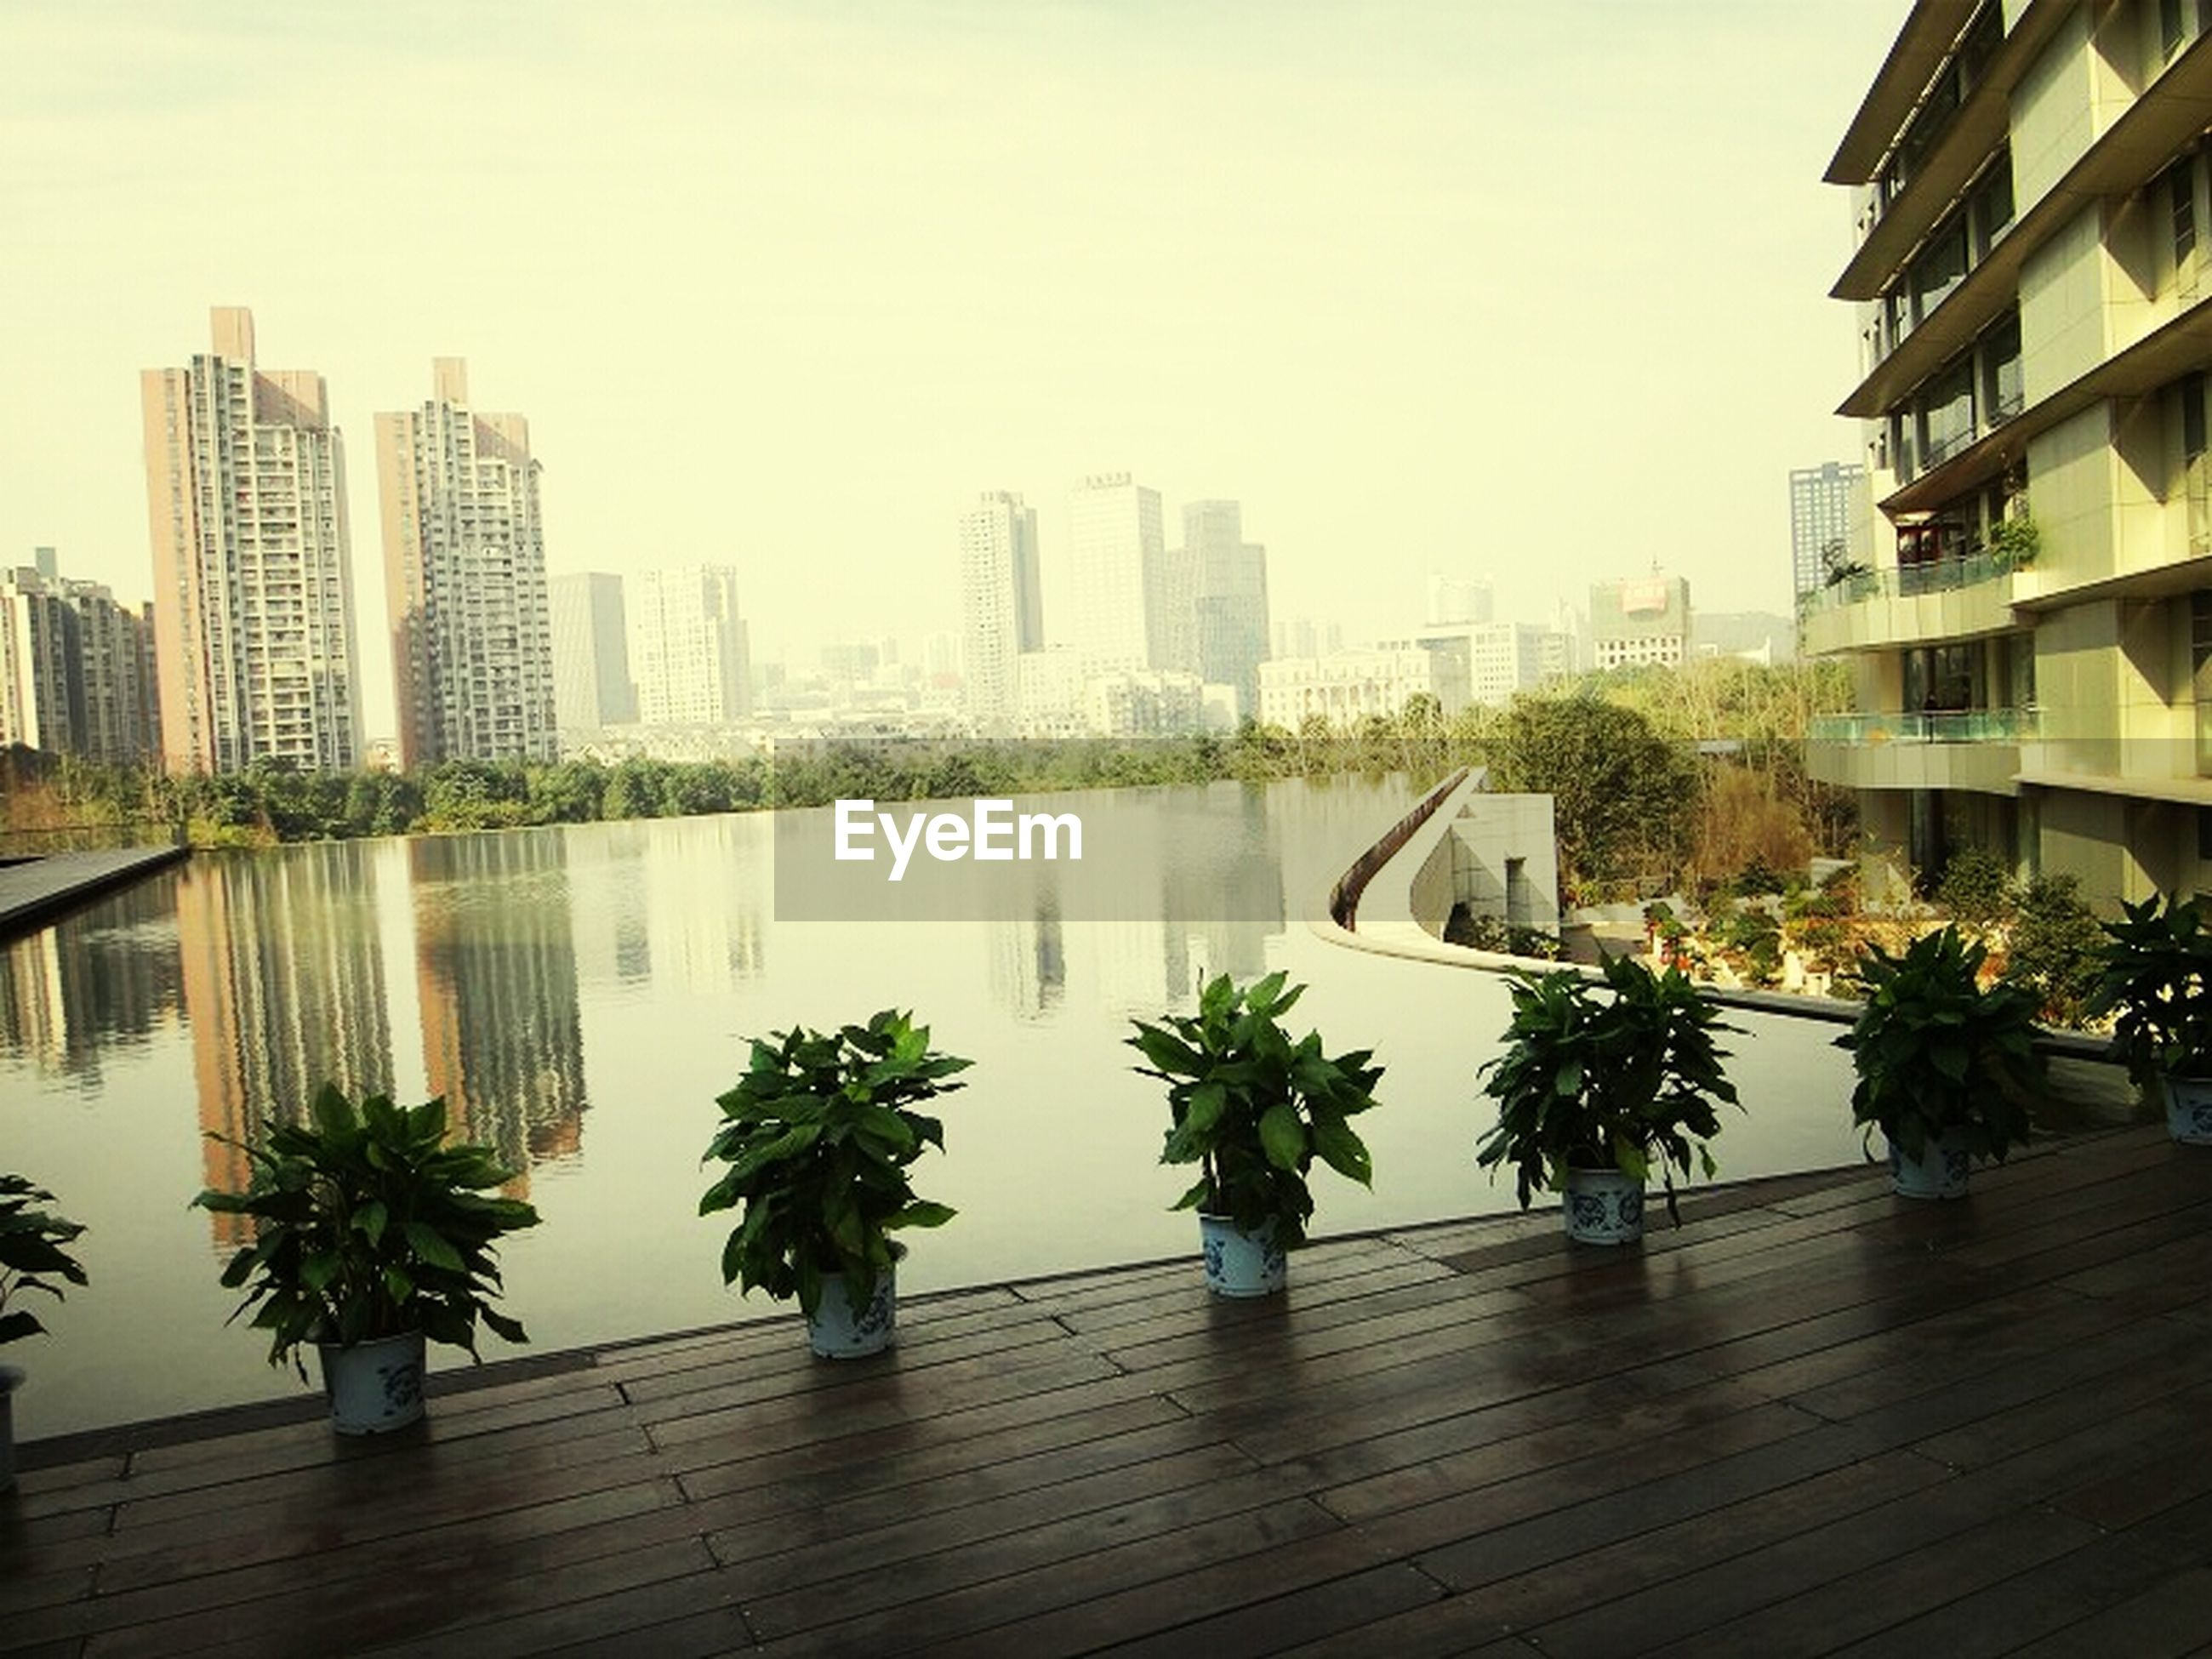 building exterior, architecture, built structure, city, skyscraper, water, tall - high, clear sky, modern, office building, cityscape, tower, tree, reflection, urban skyline, river, railing, growth, sky, palm tree